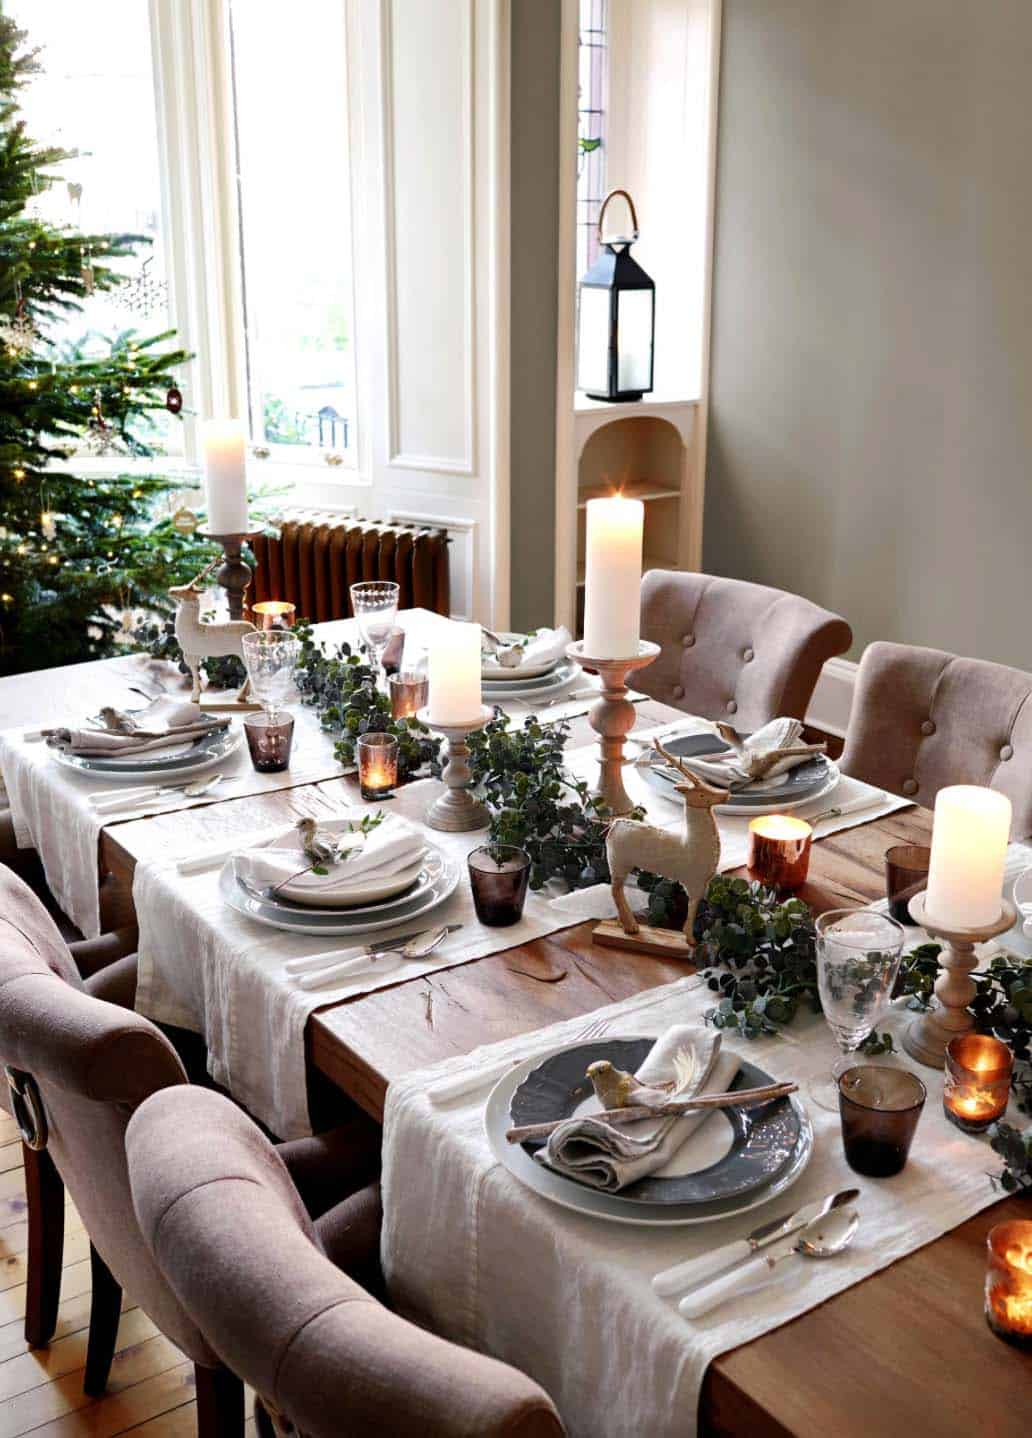 Inspiring Dining Table Christmas Decor Ideas 17 1 Kindesign